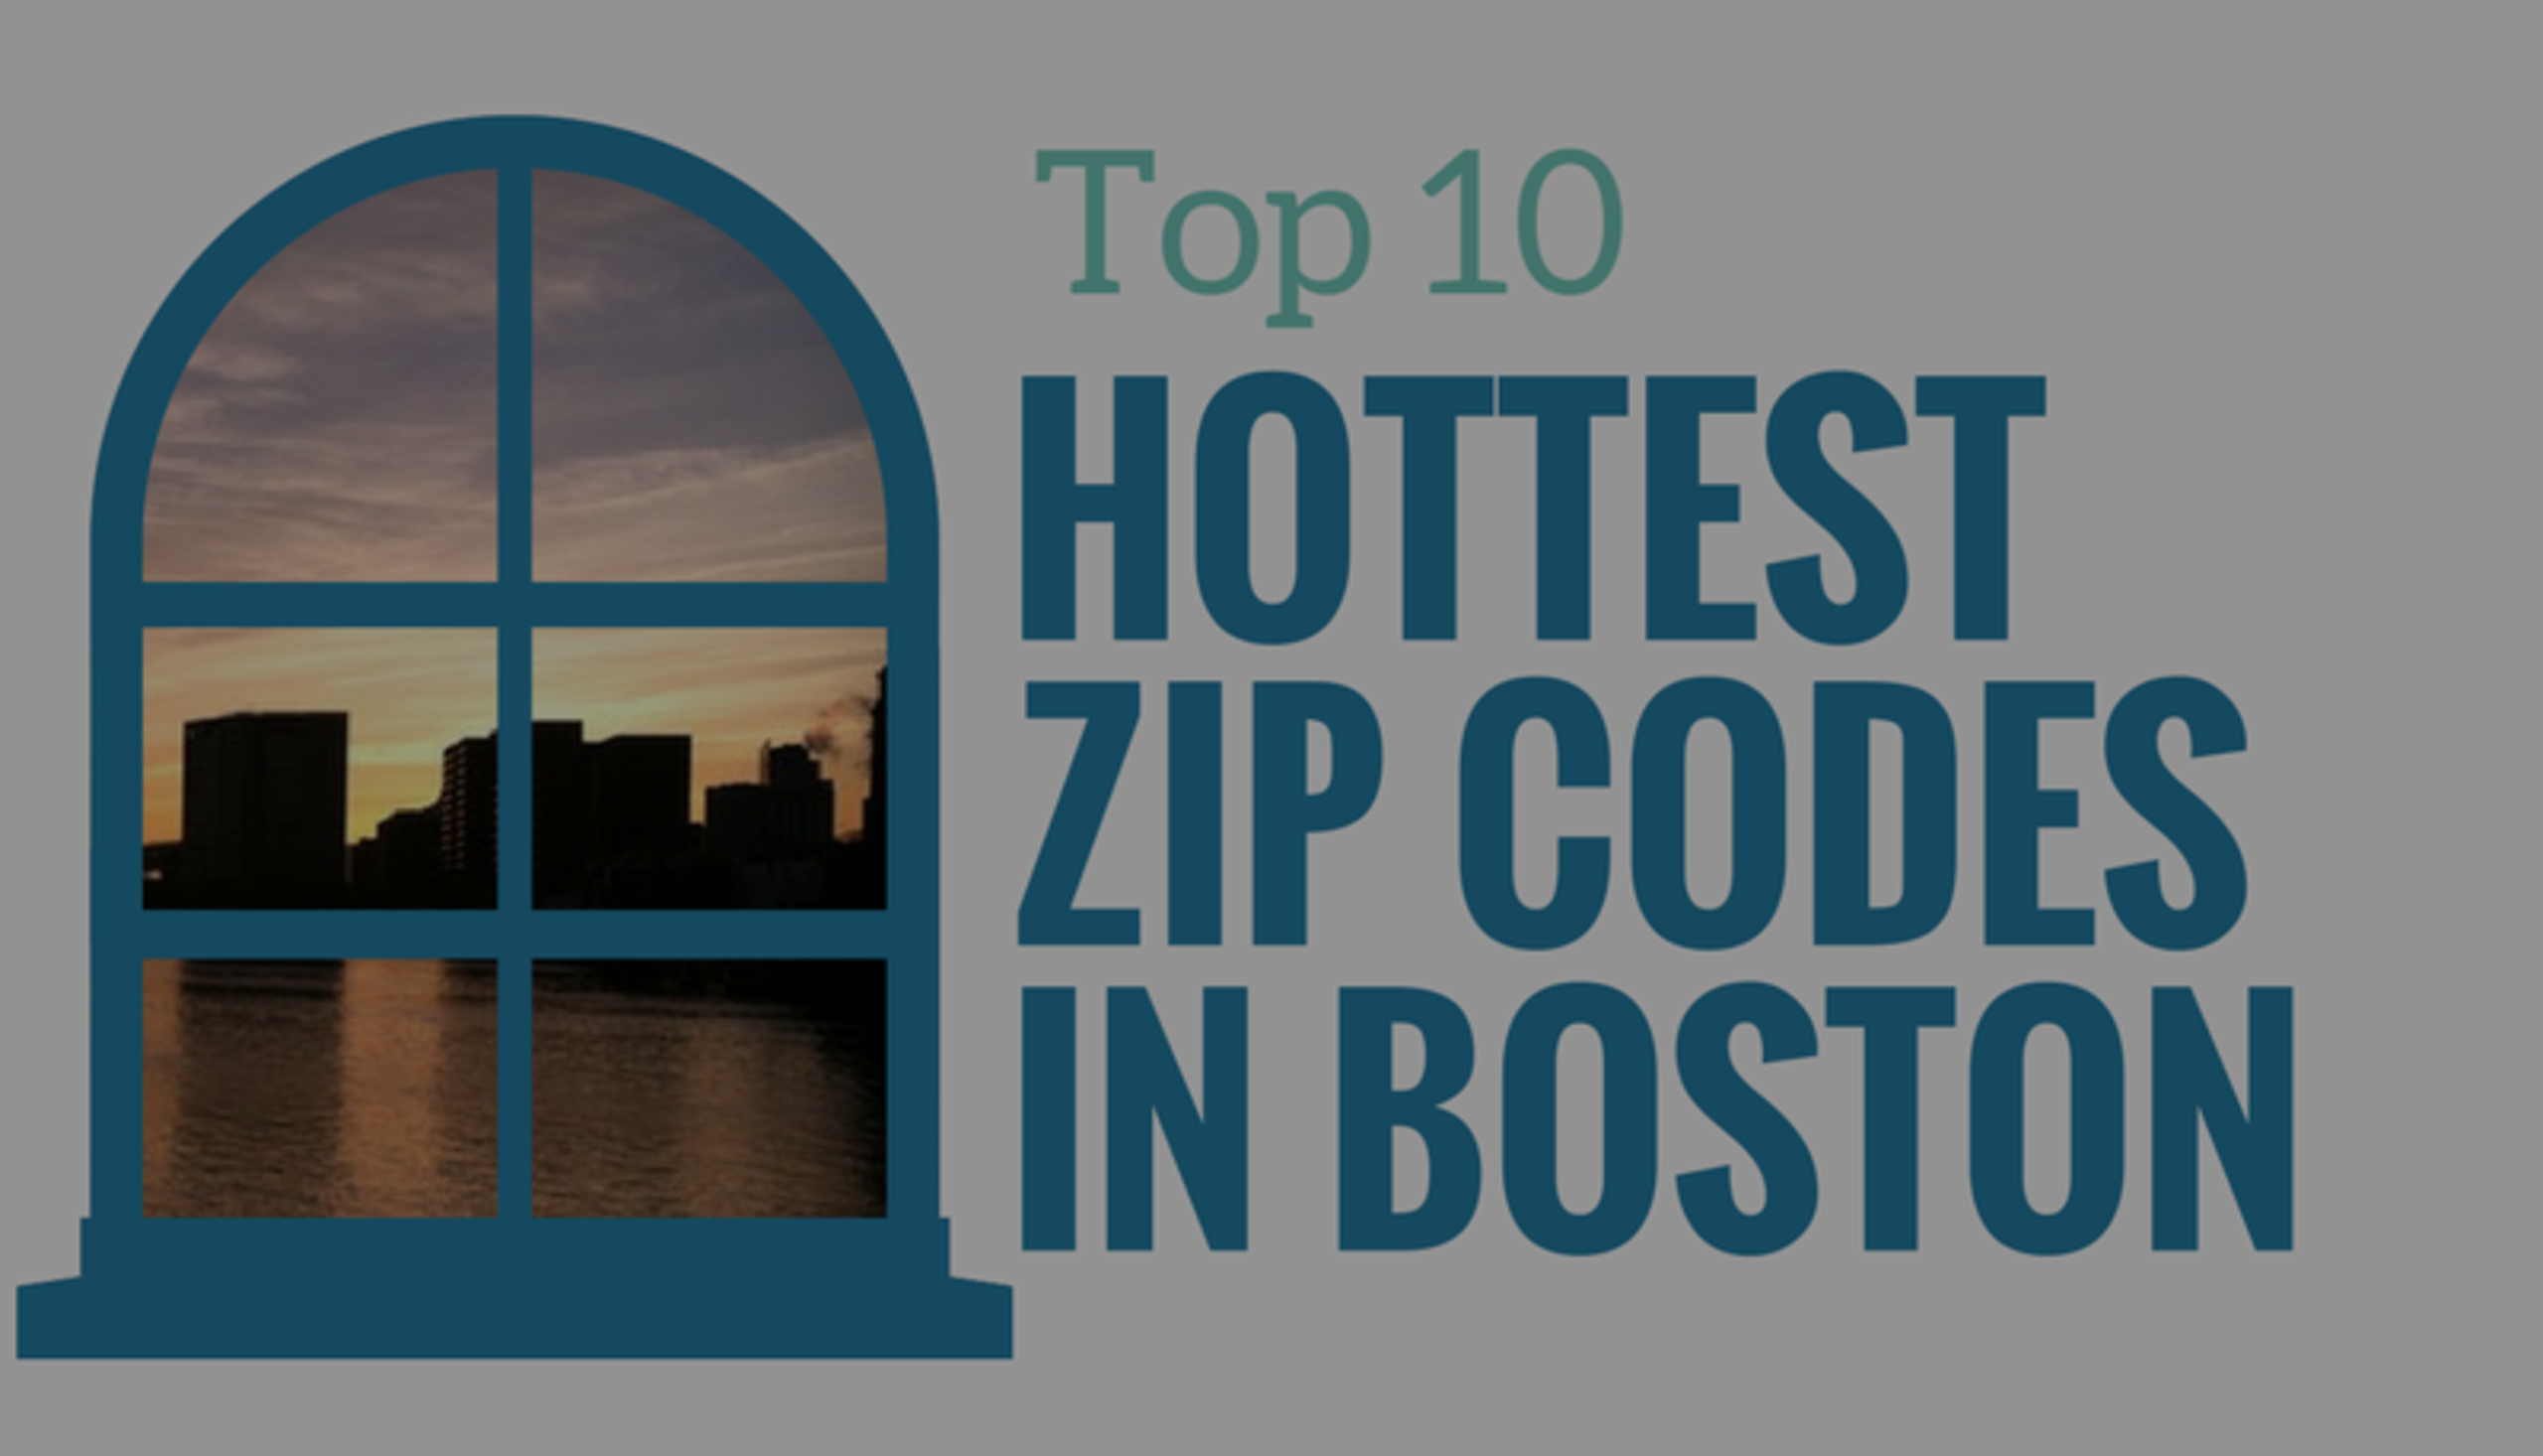 Top 10 Hottest Zip Codes in the Boston Area